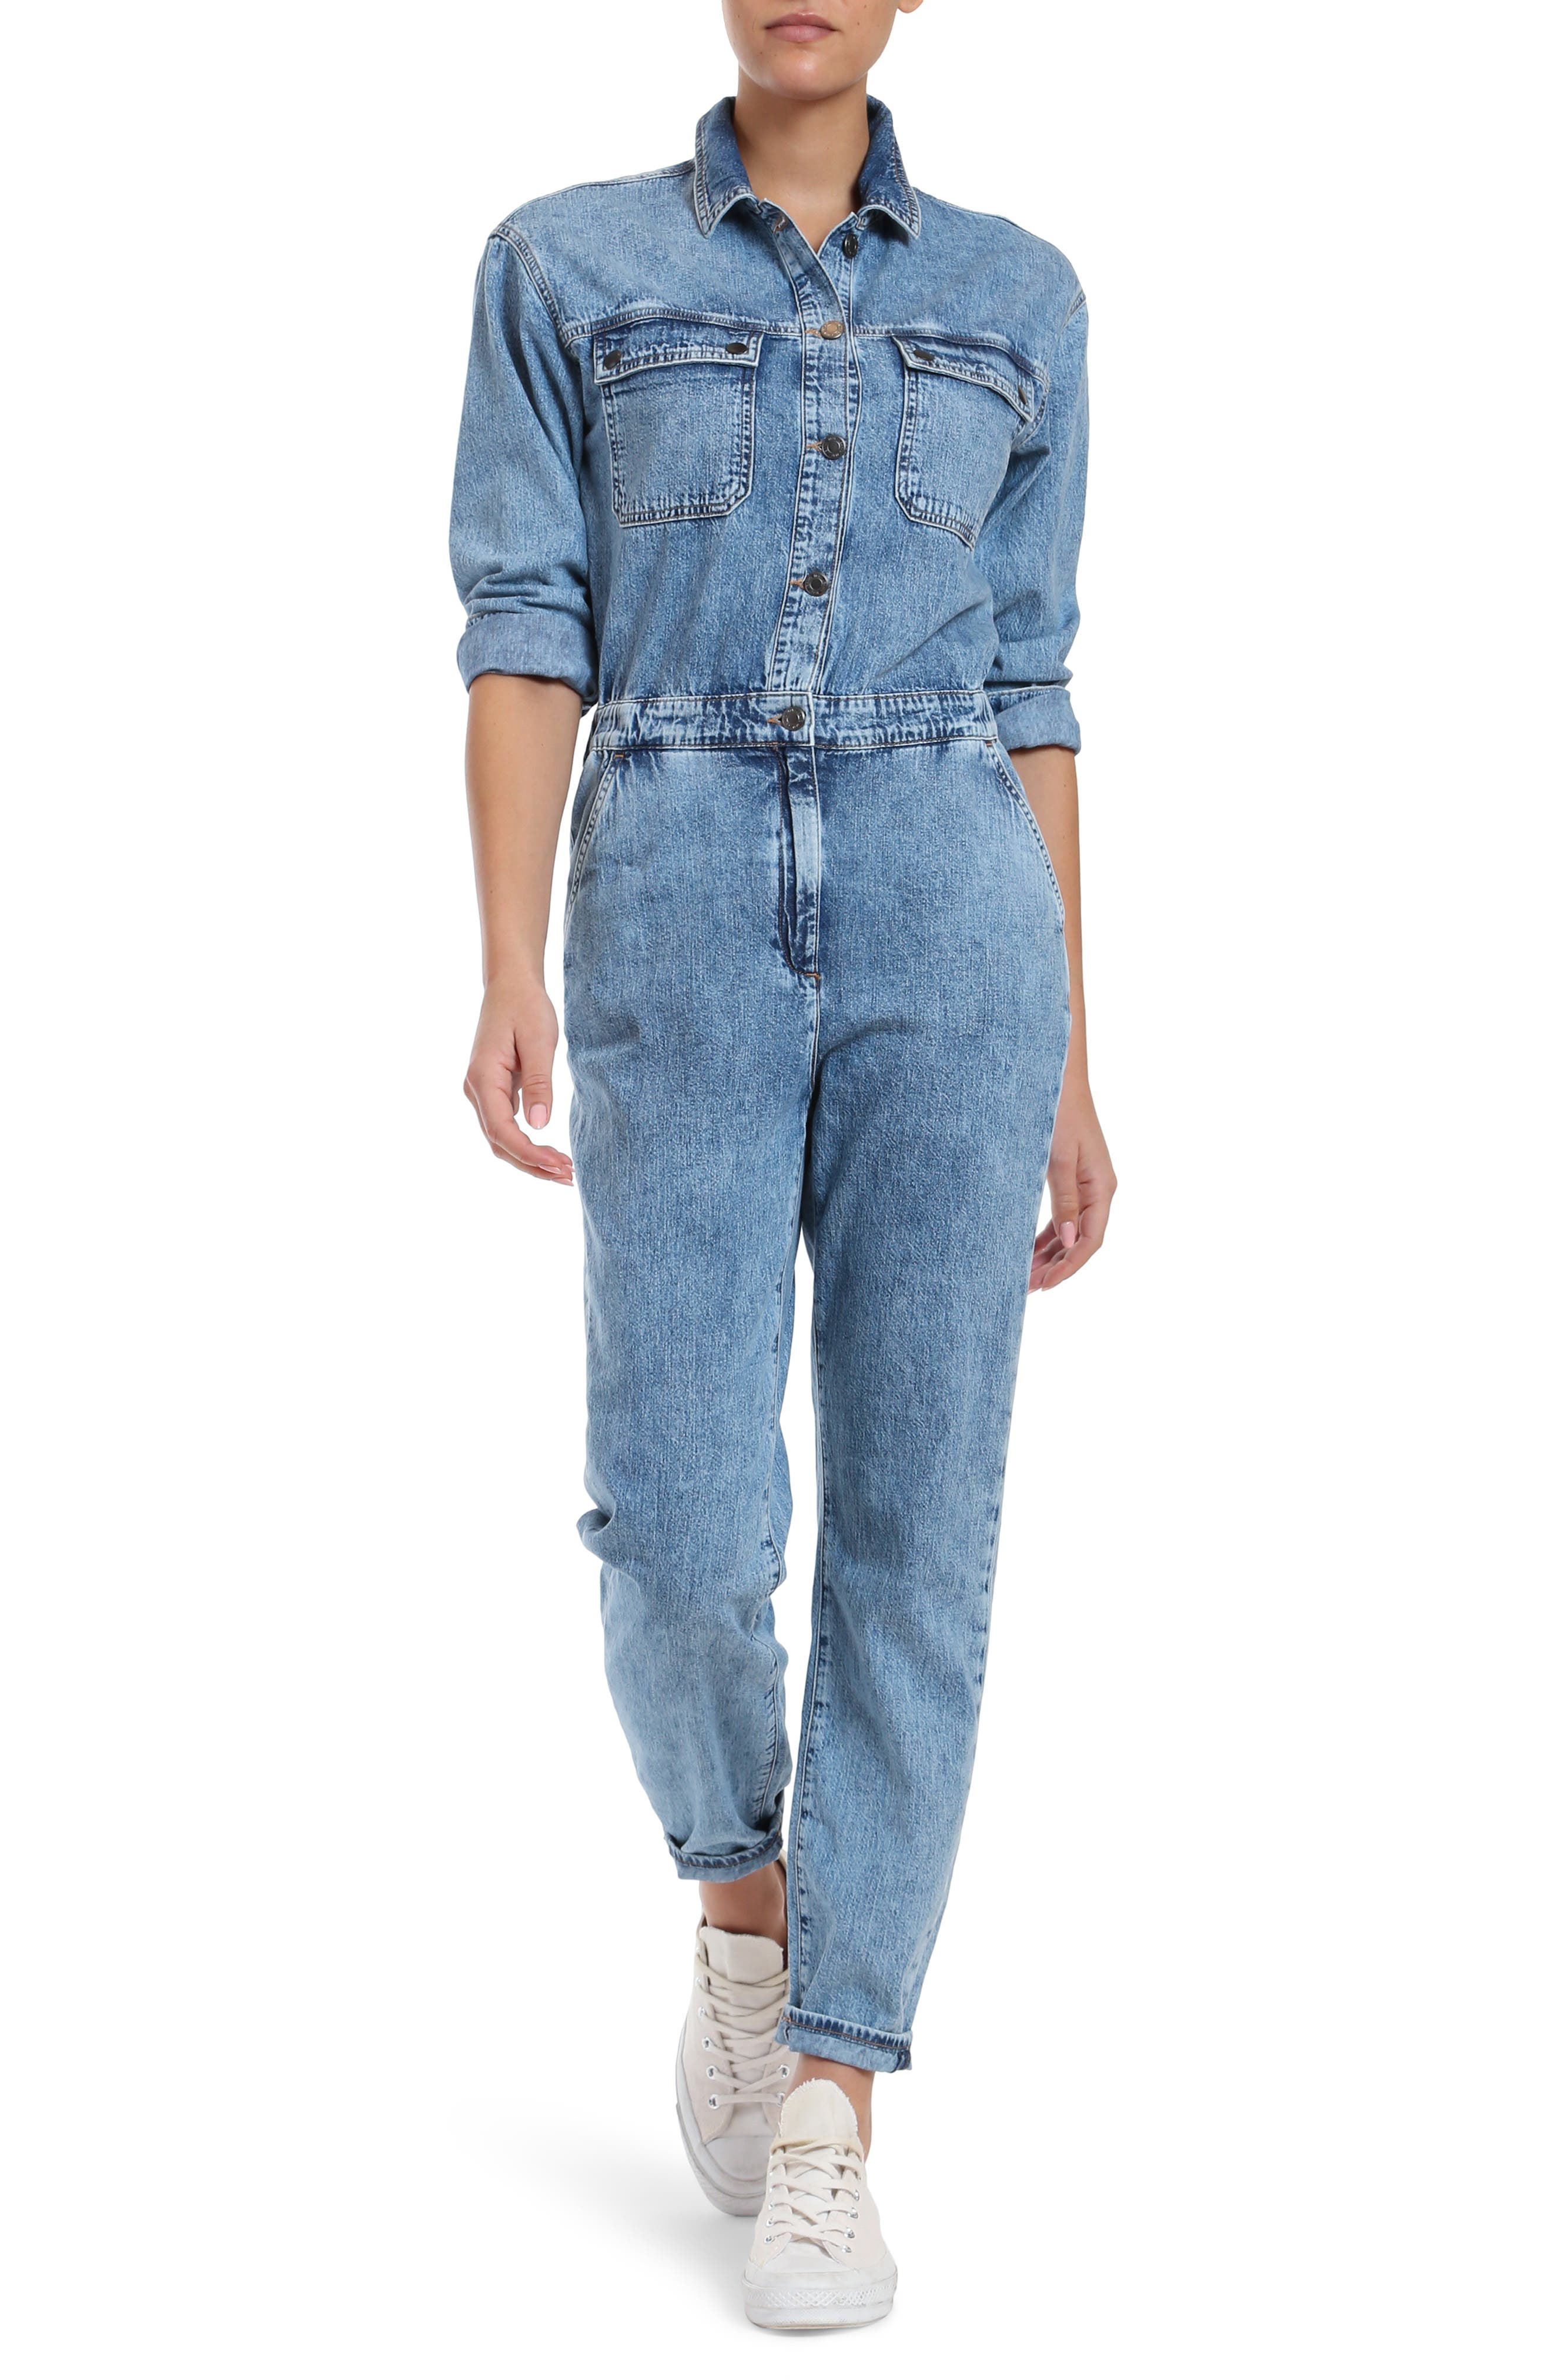 Instantly upgrade your casual look with this utilitarian jumpsuit made from nonstretch organic-cotton denim. Style Name: Mavi Jeans Eva Organic Cotton Denim Jumpsuit. Style Number: 6056904. Available in stores.